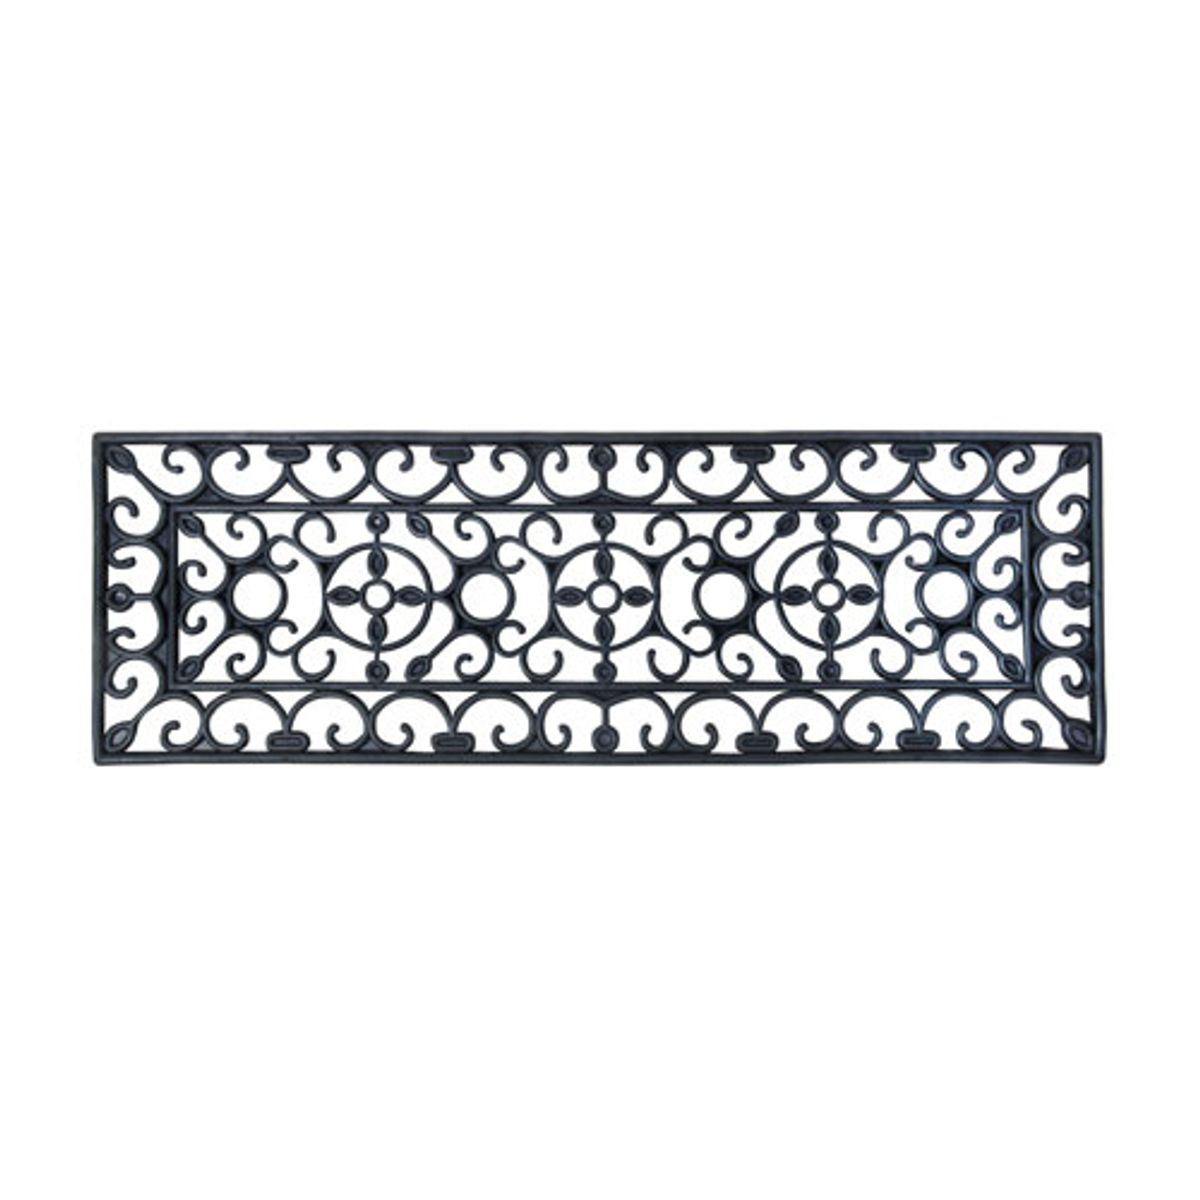 Tapis pour escalier fashion designs for Tapis paillasson exterieur